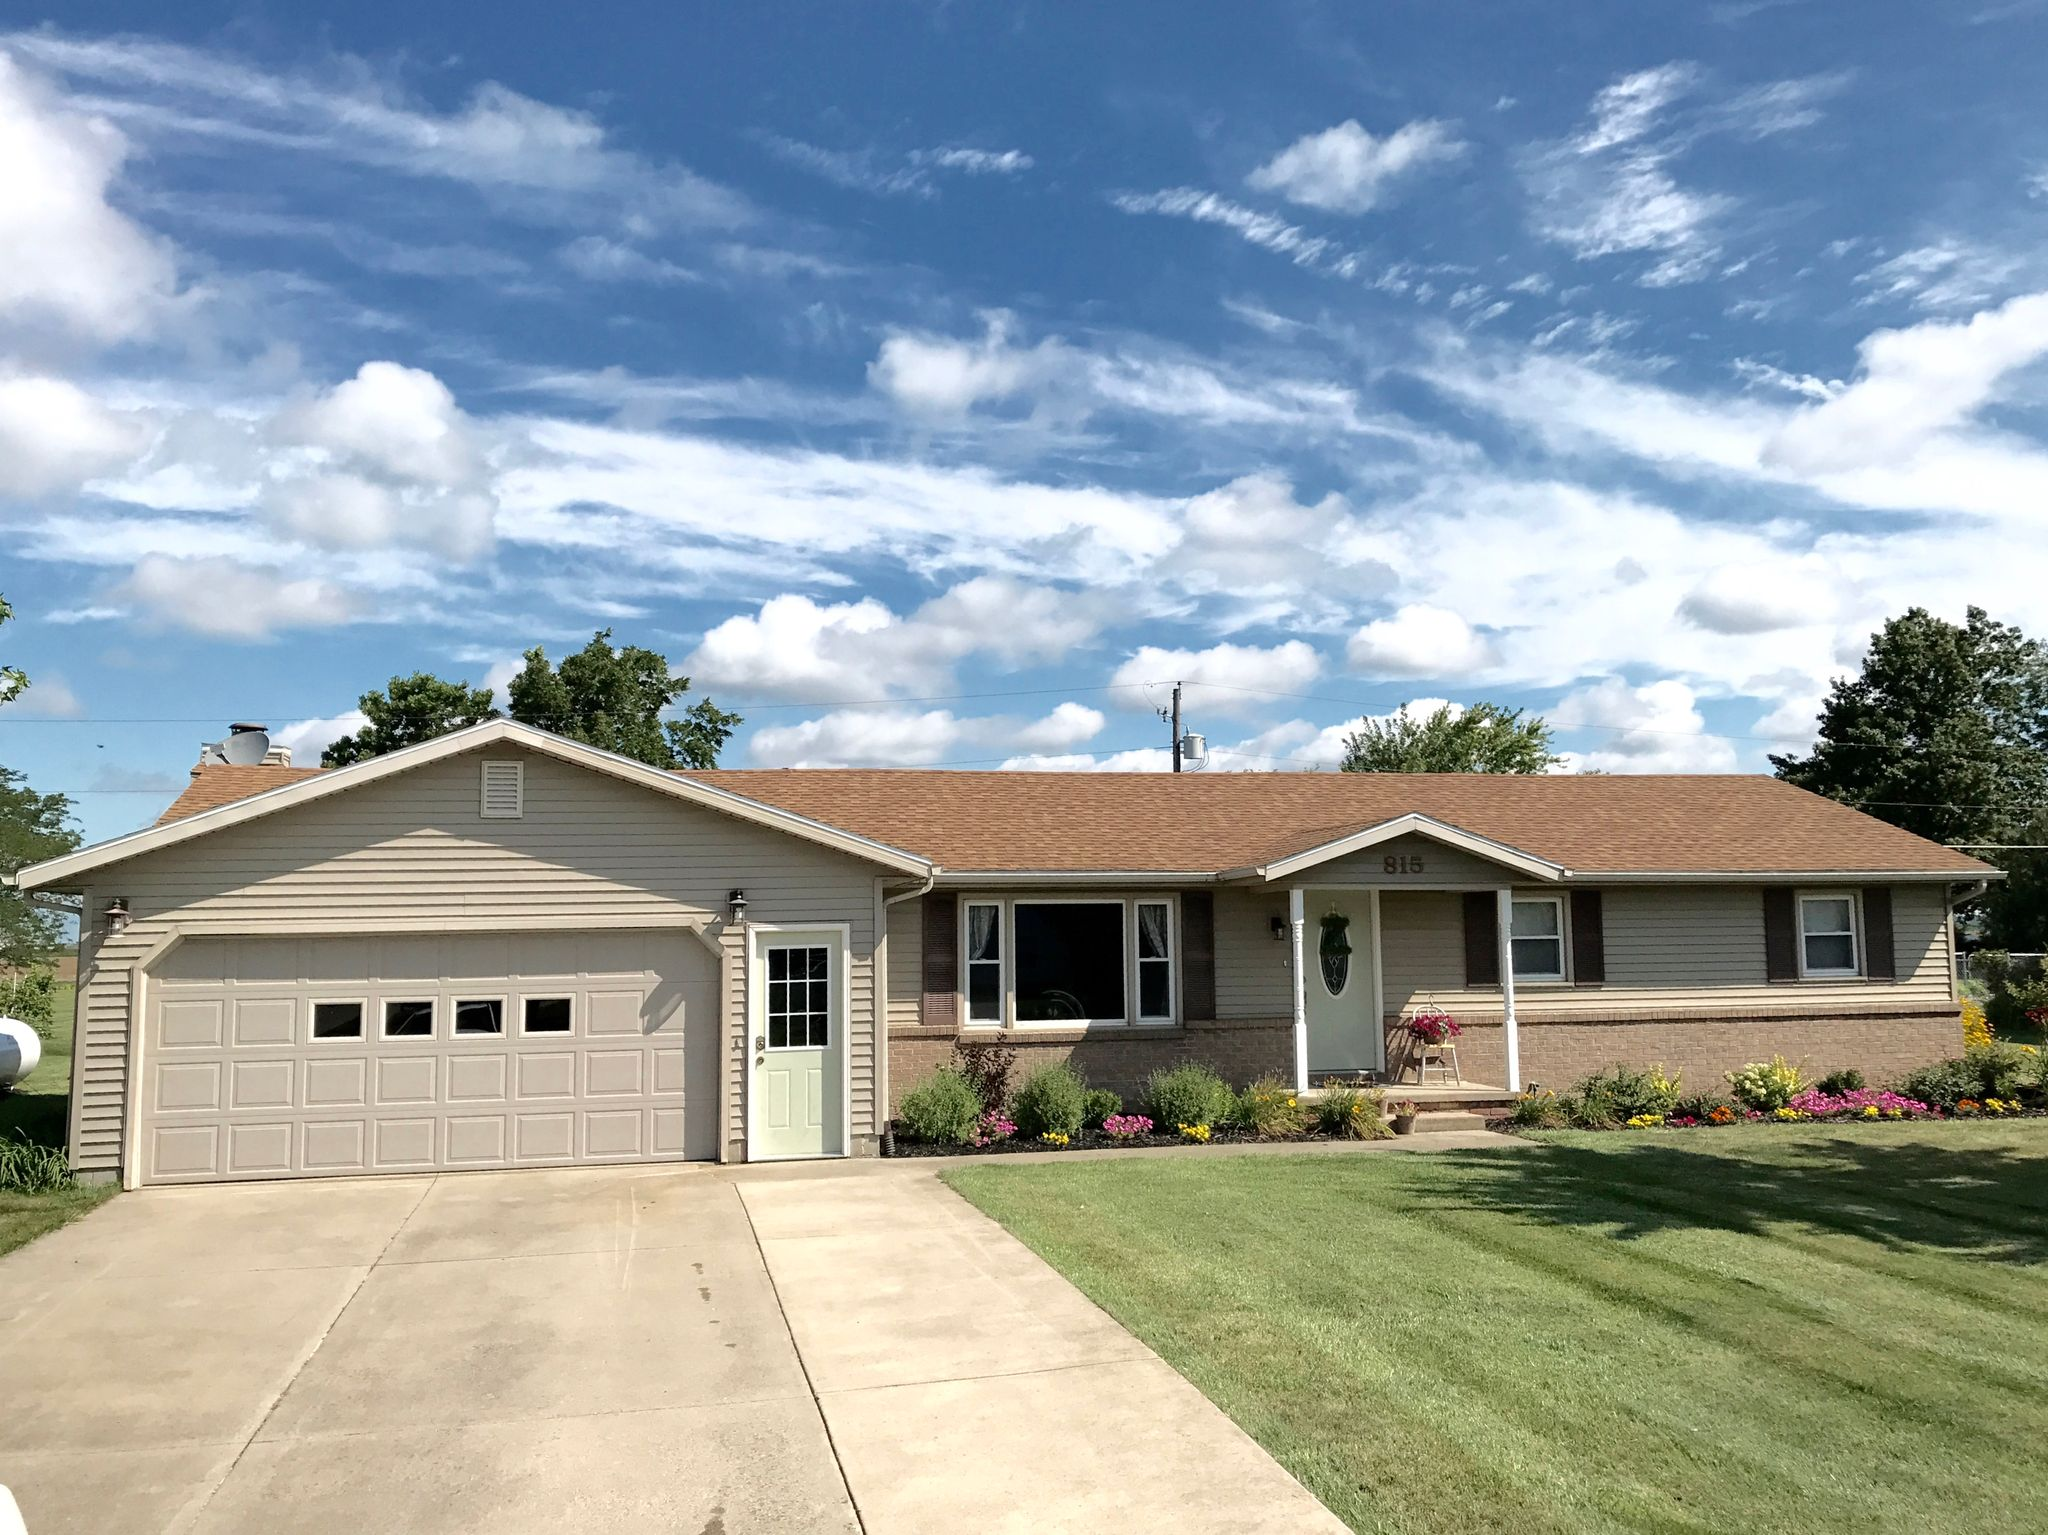 815 country view dr, paulding, oh 45879 - estimate and home